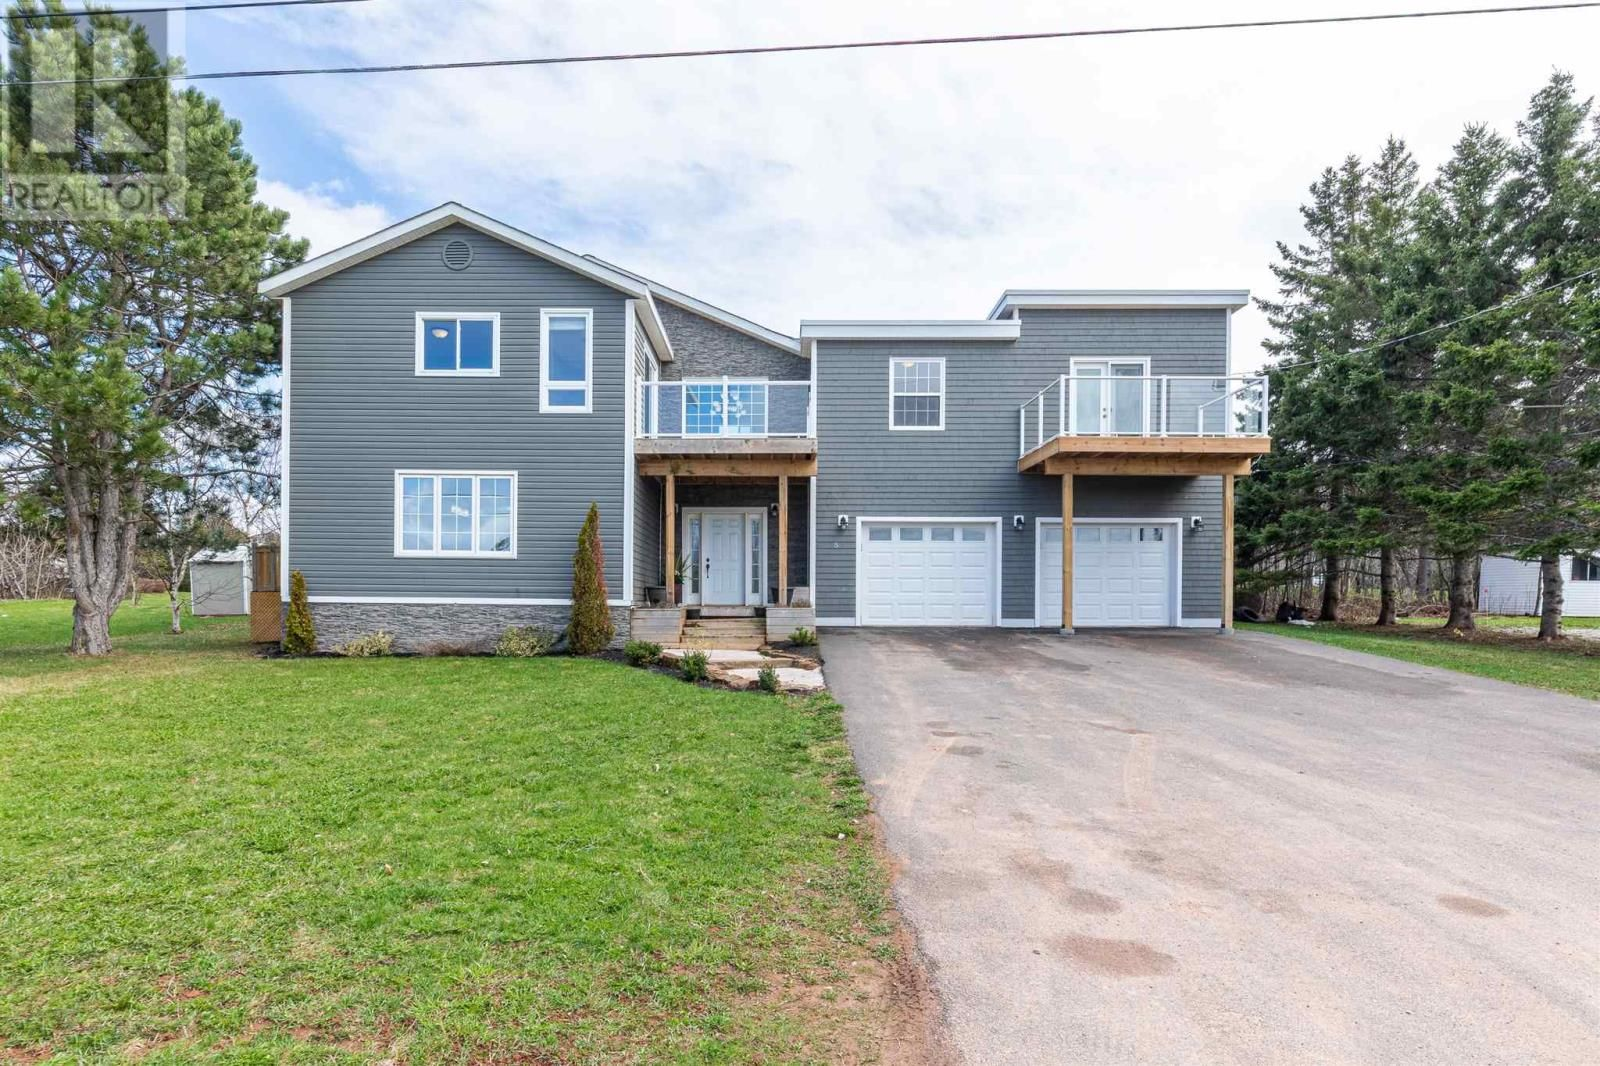 Photo 2: Photos: 5 Cherry Lane in Stratford: House for sale : MLS®# 202119303